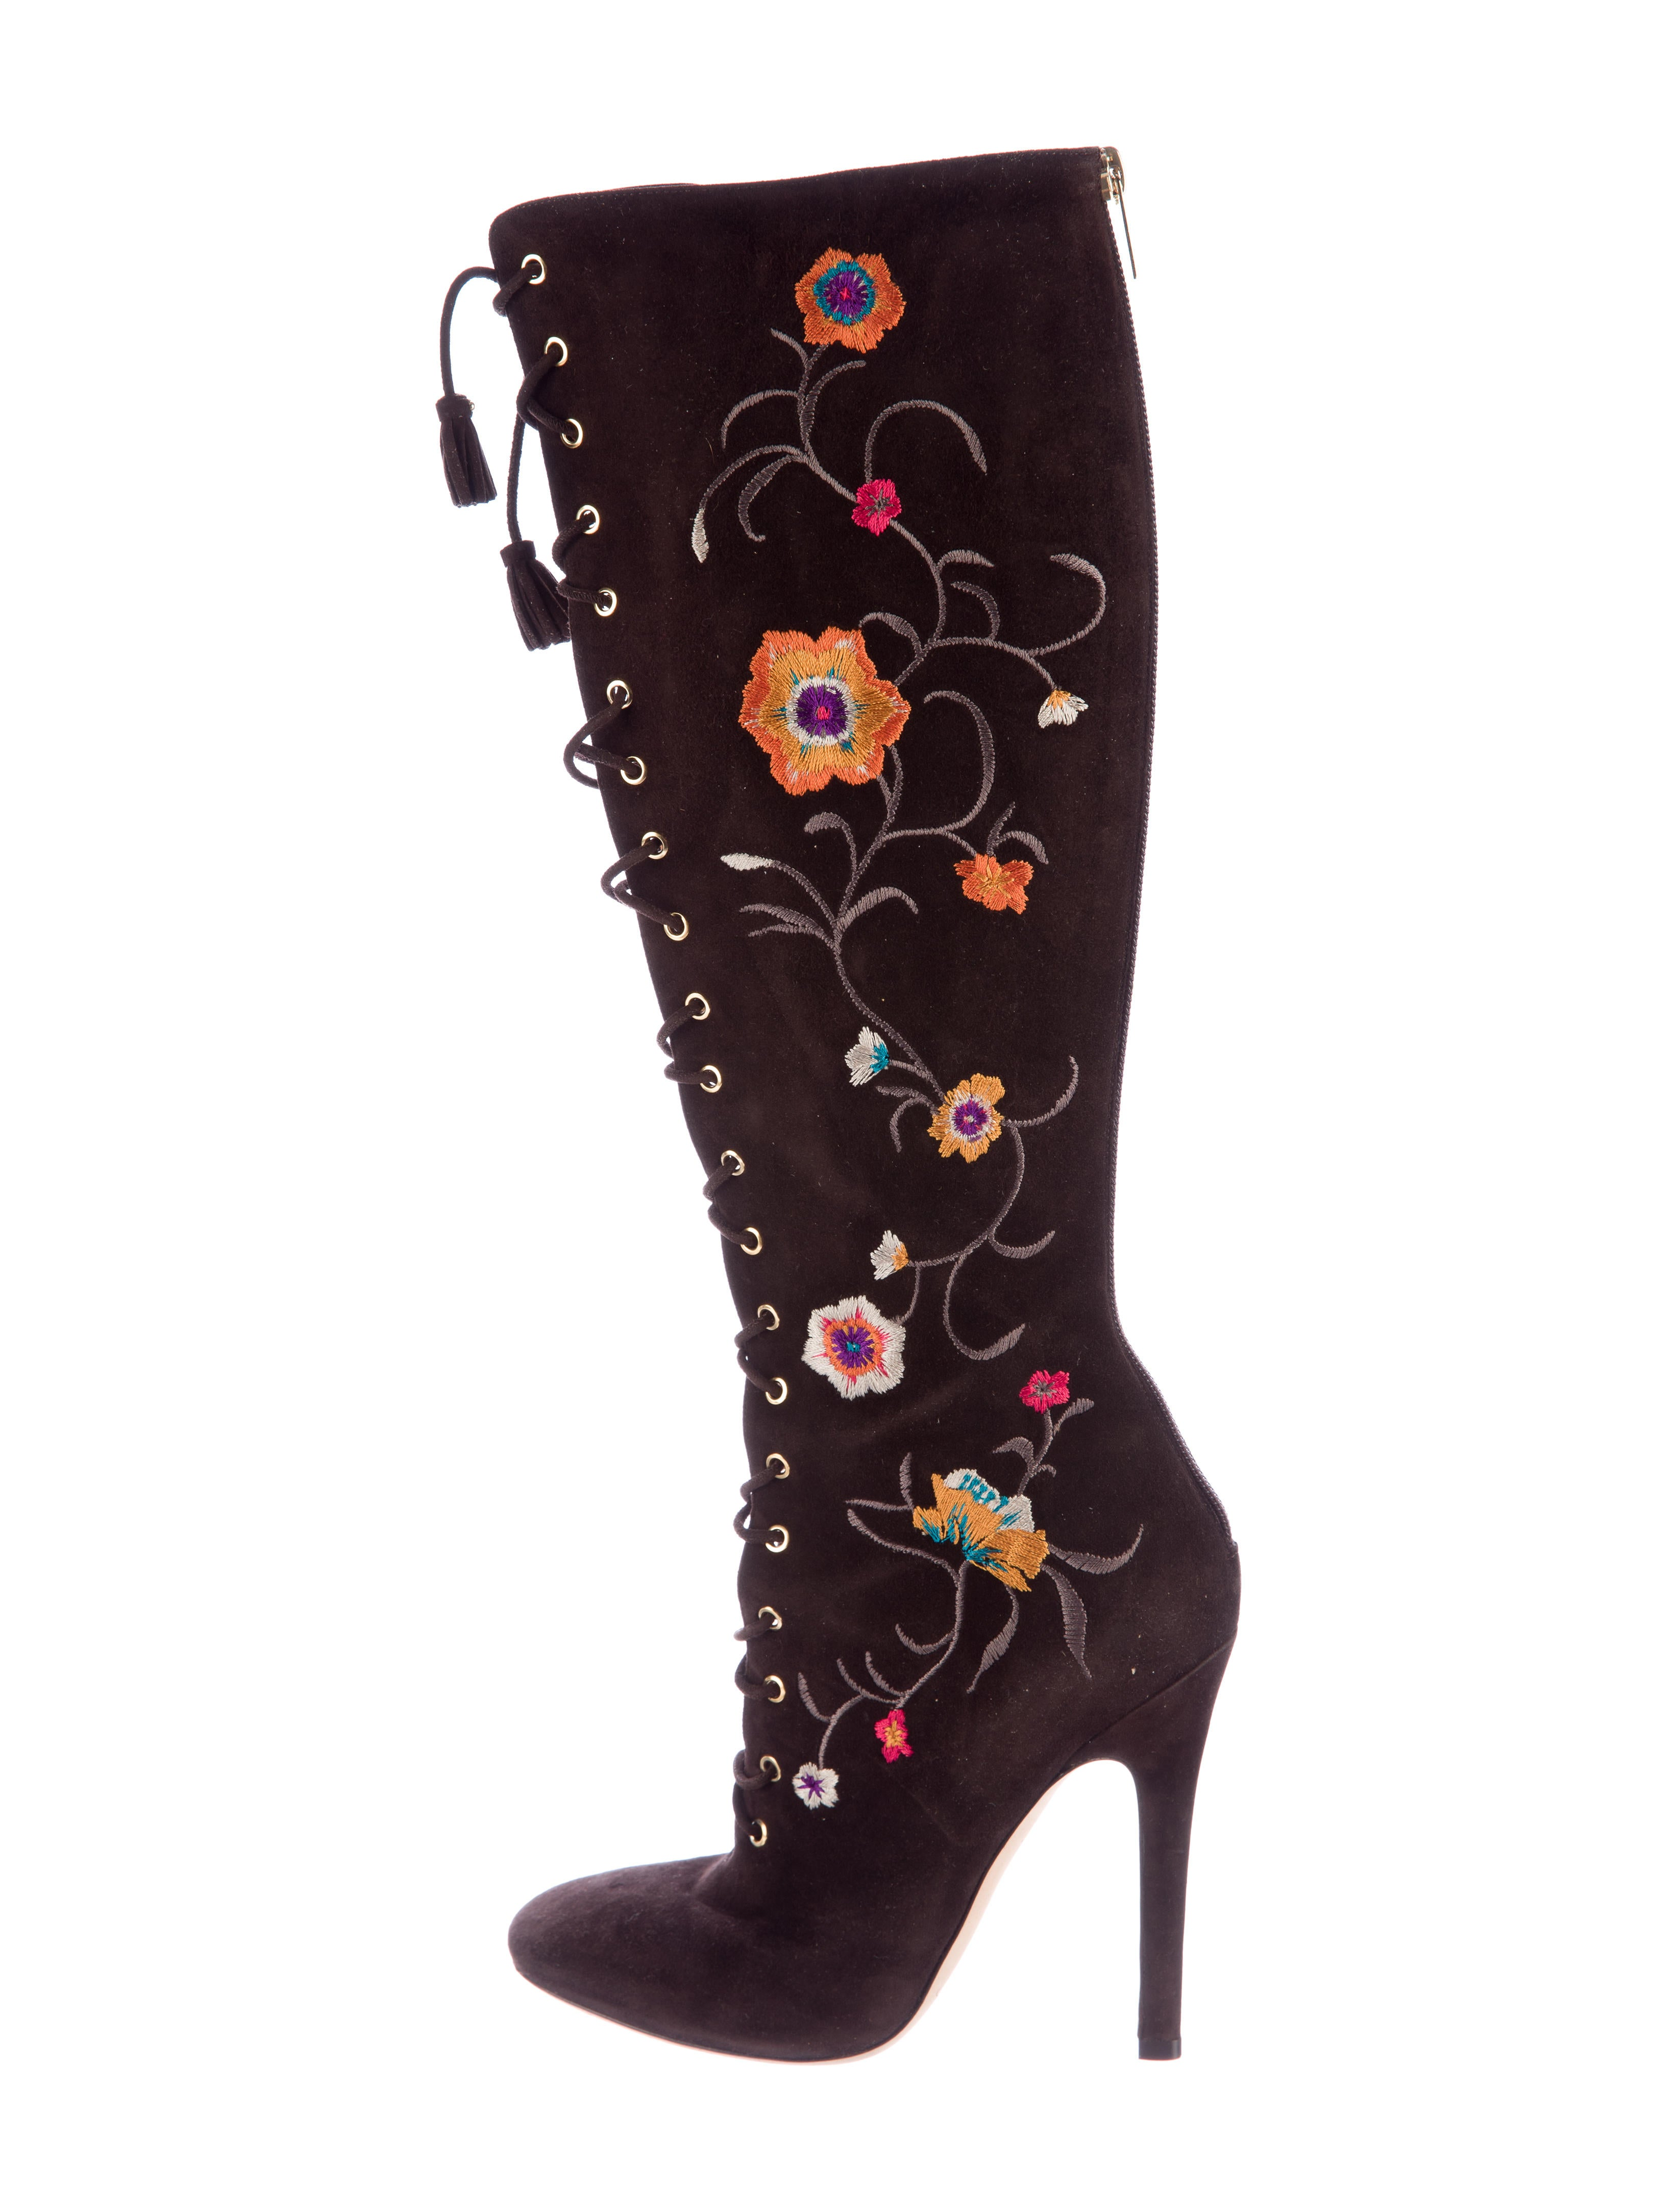 cf3f1359e08 Jimmy Choo Colorado Embroidered Boots - Shoes - JIM62210